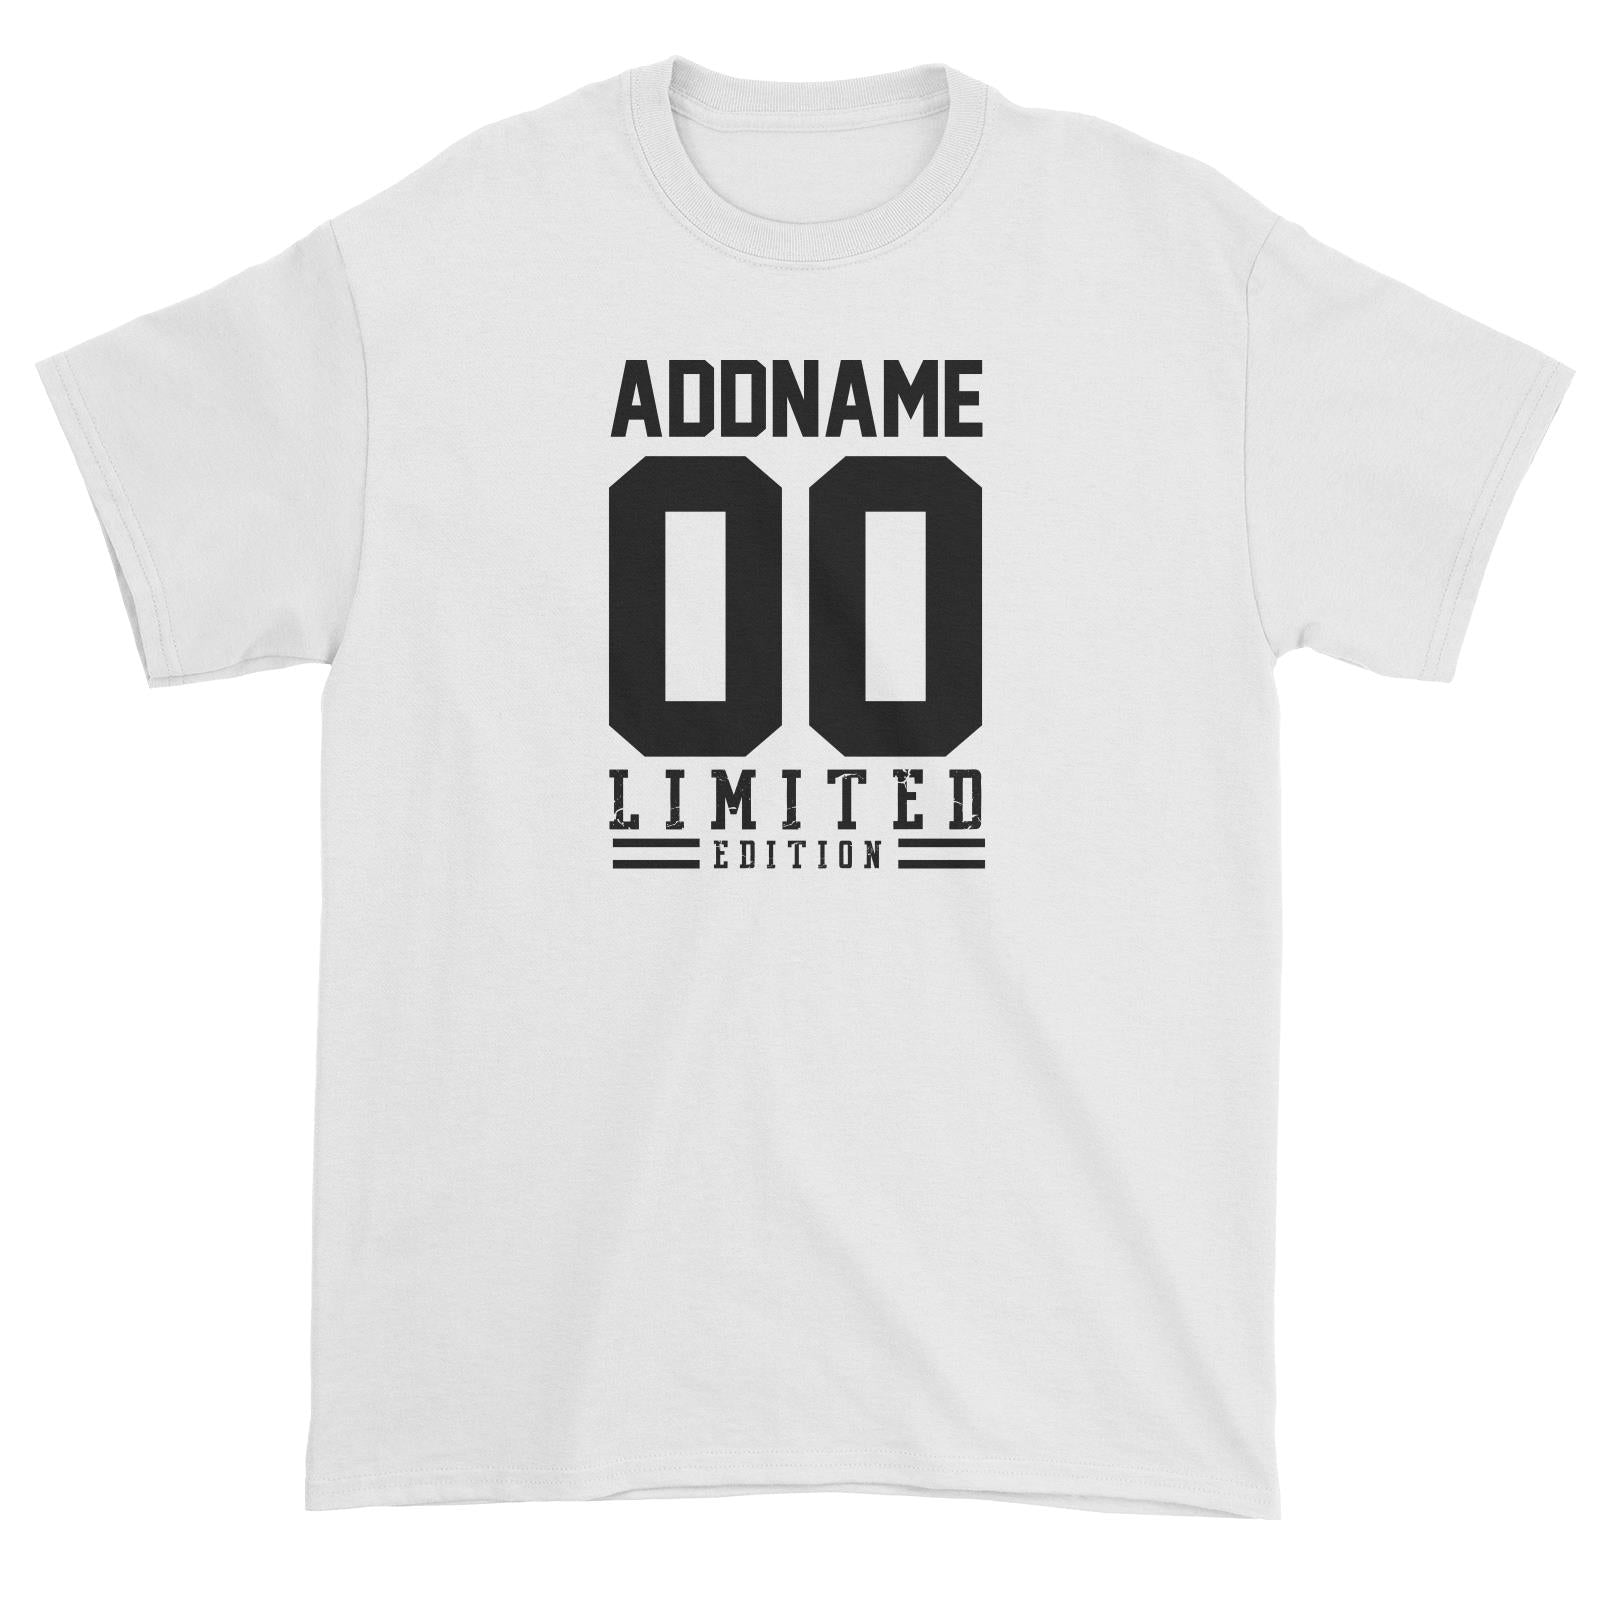 Limited Edition Jersey Personalizable with Name and Number Unisex T-Shirt